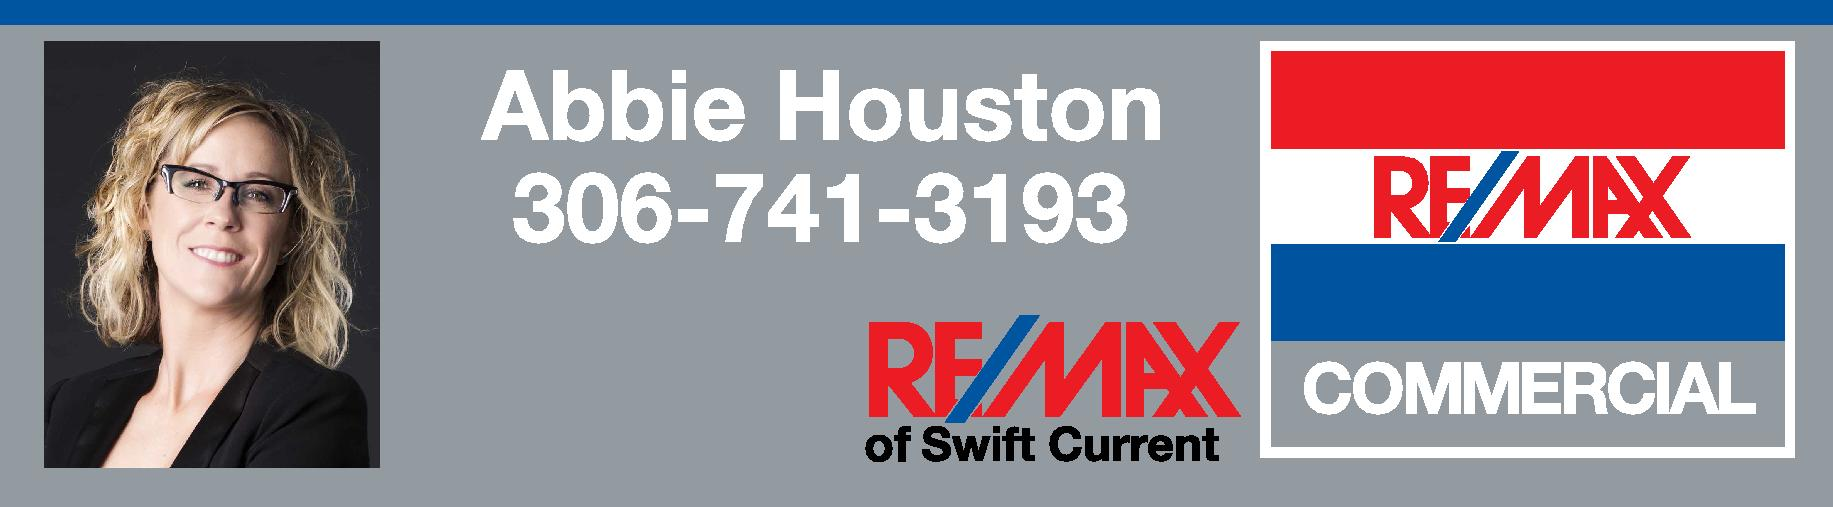 Abbie Houston Remax Realtor Logo (1)-page-001.jpg